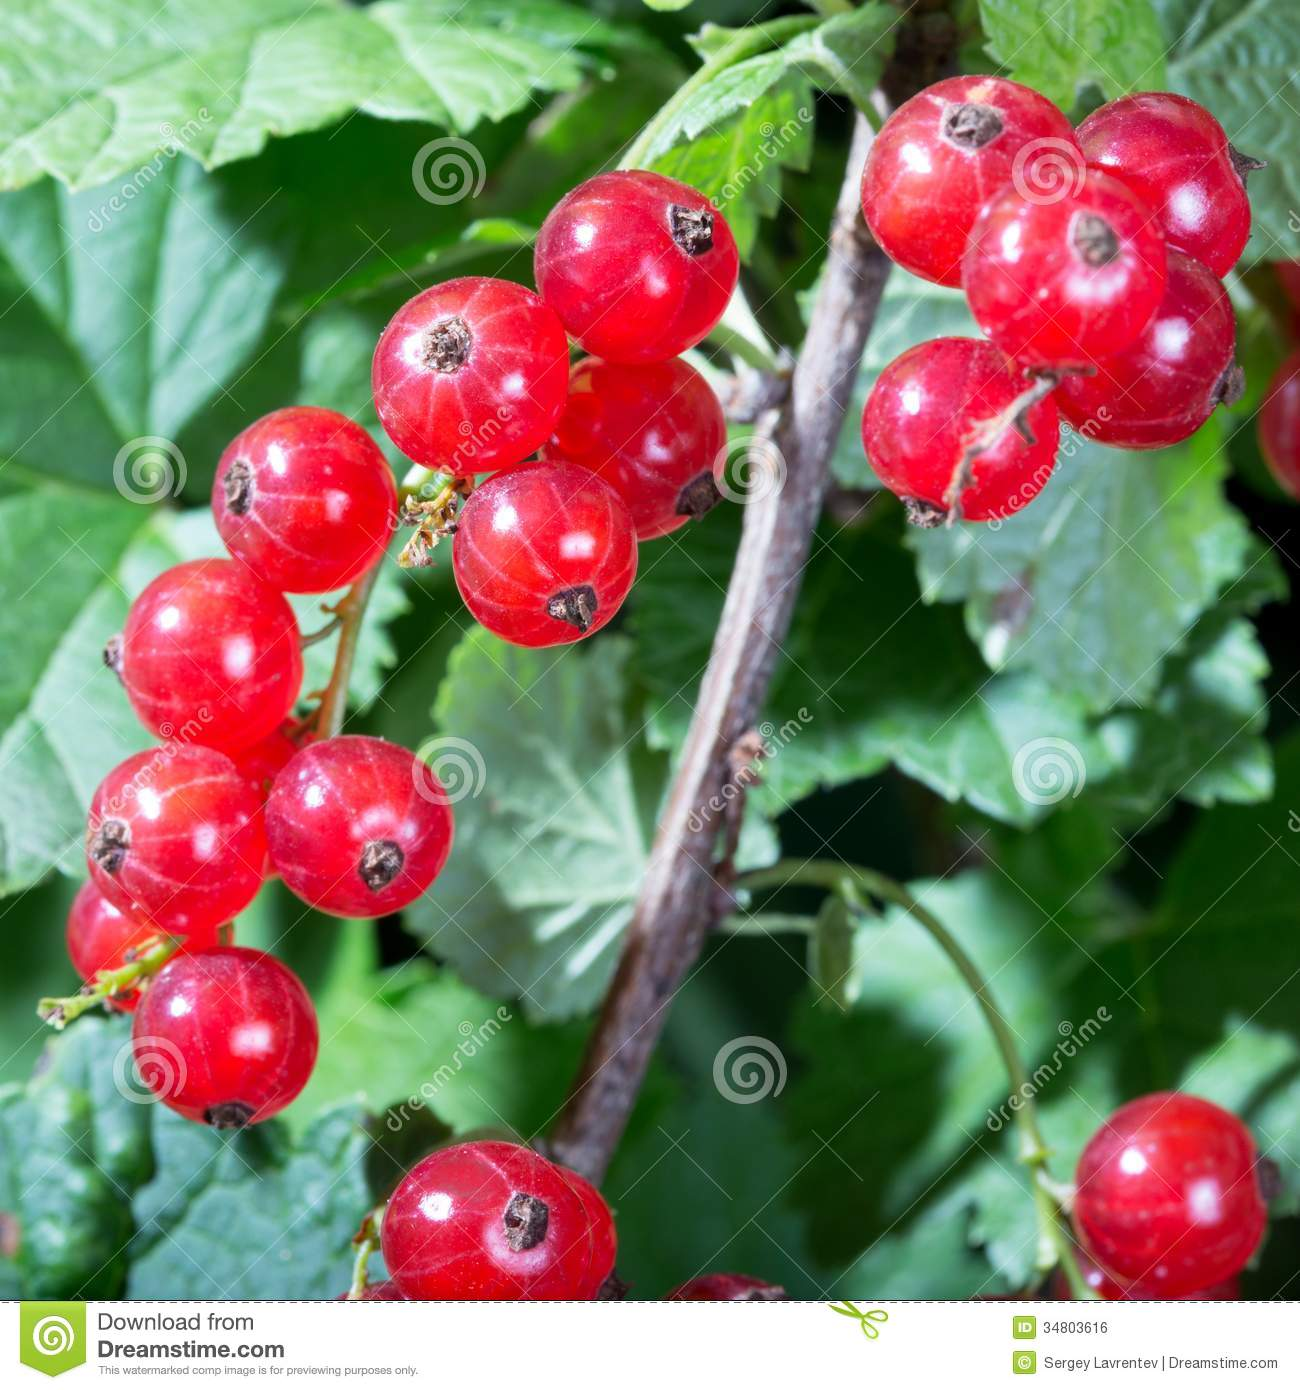 Red Currant Berries Royalty Free Stock Image - Image: 34803616